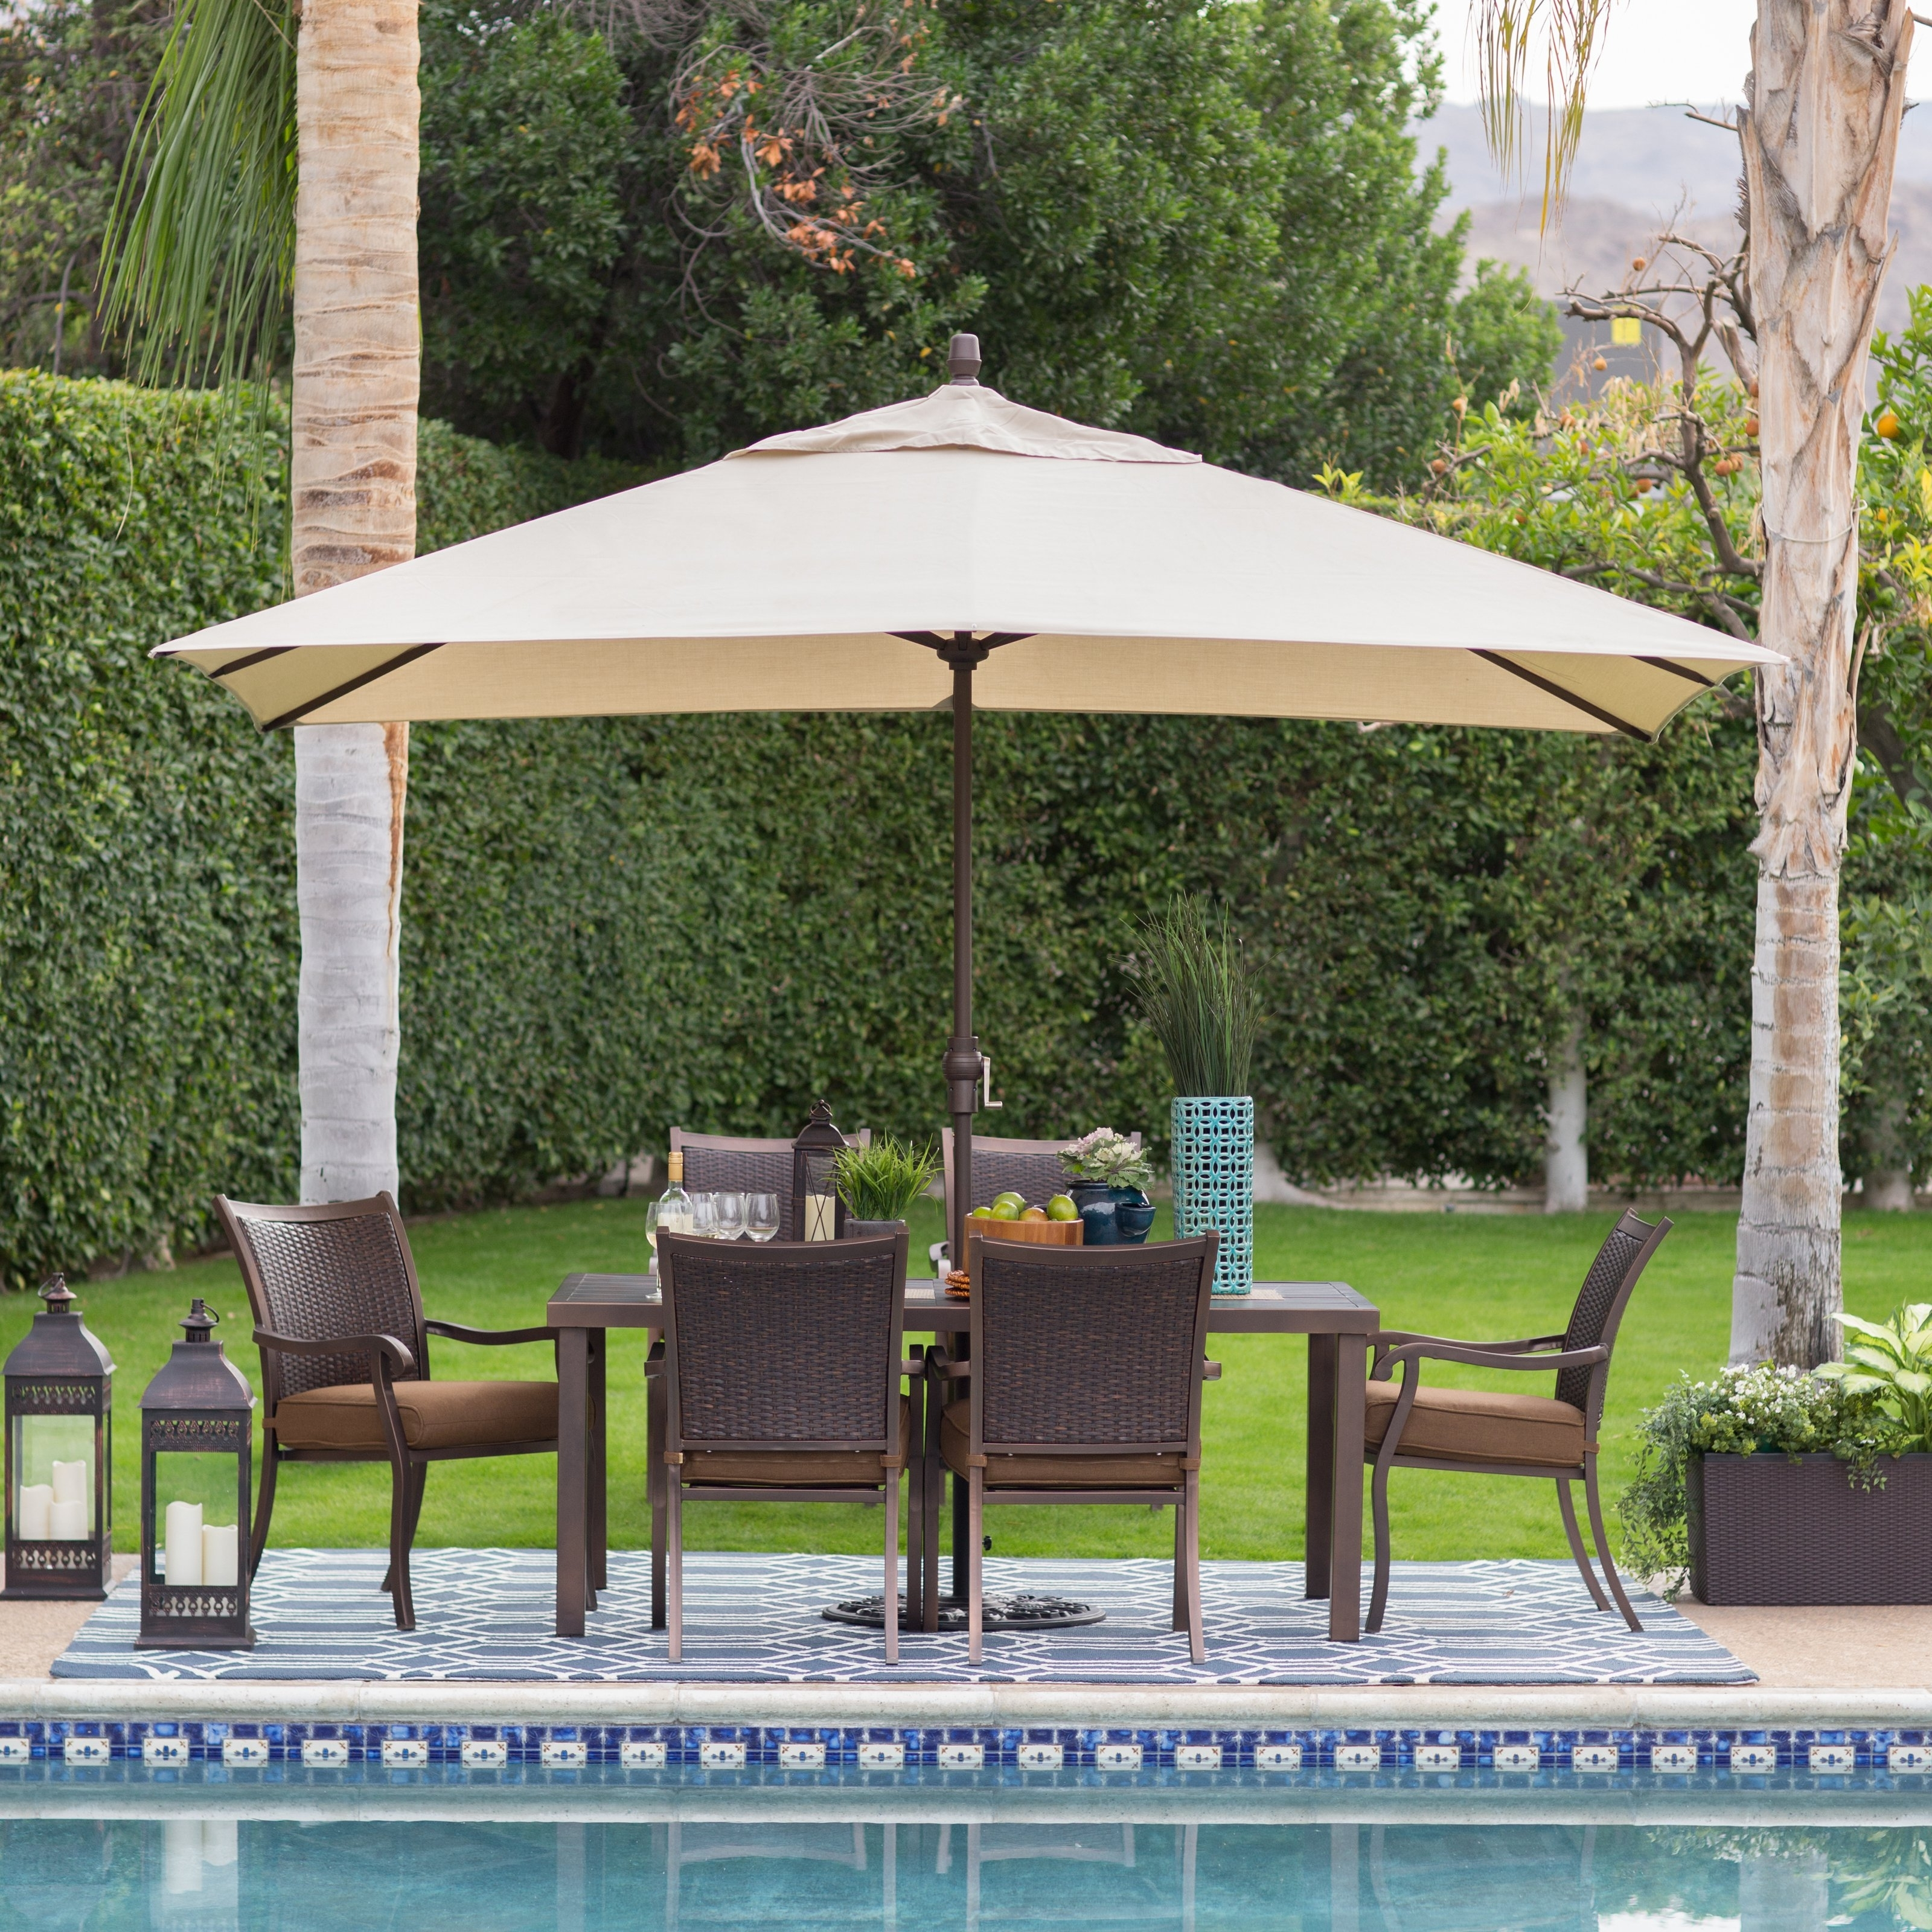 Target Patio Umbrellas Within Best And Newest Lovely Target Patio Umbrella Exterior Inspiring Patio Decor Ideas (View 2 of 20)